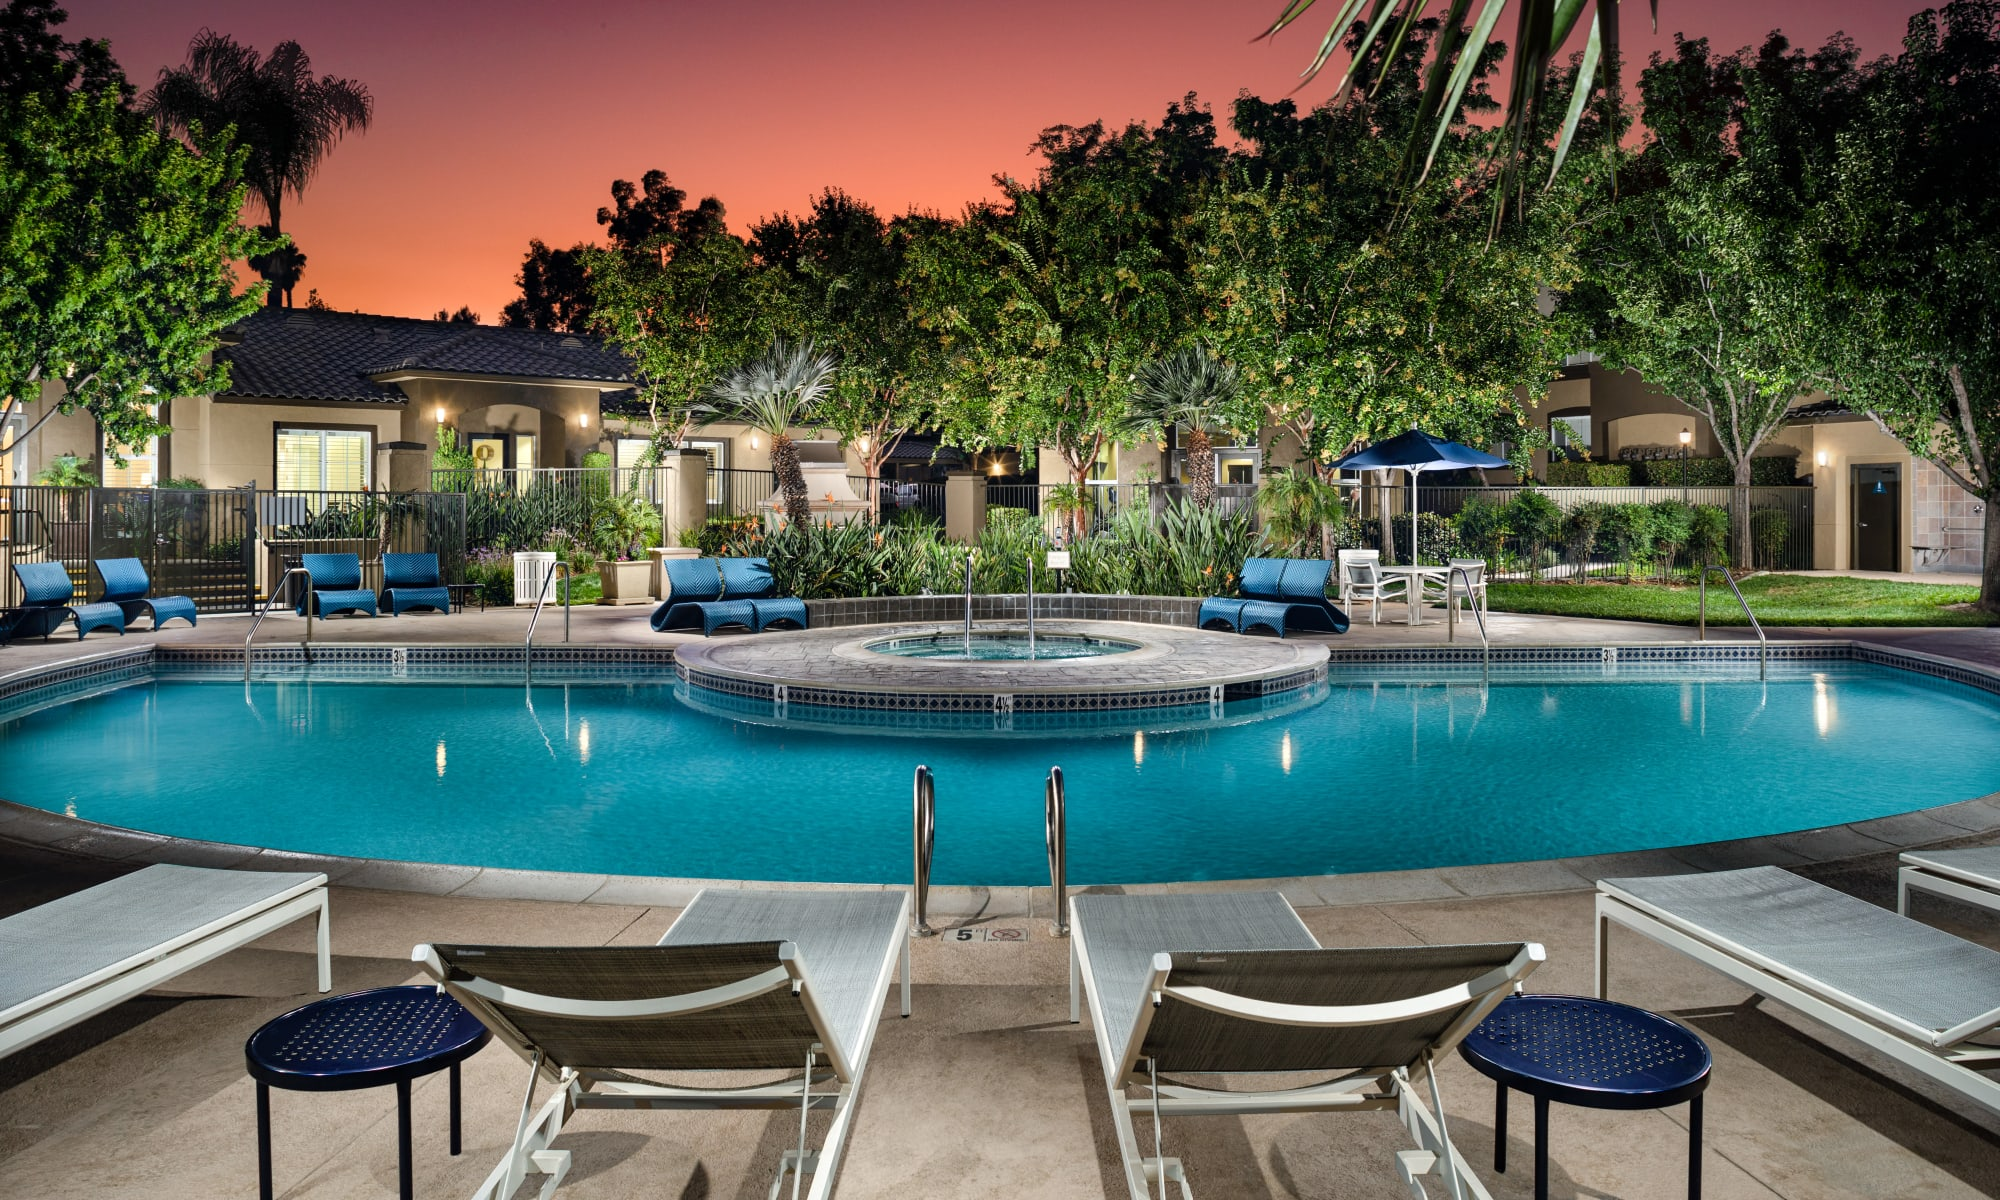 Castlerock at Sycamore Highlands apartments in Riverside, California